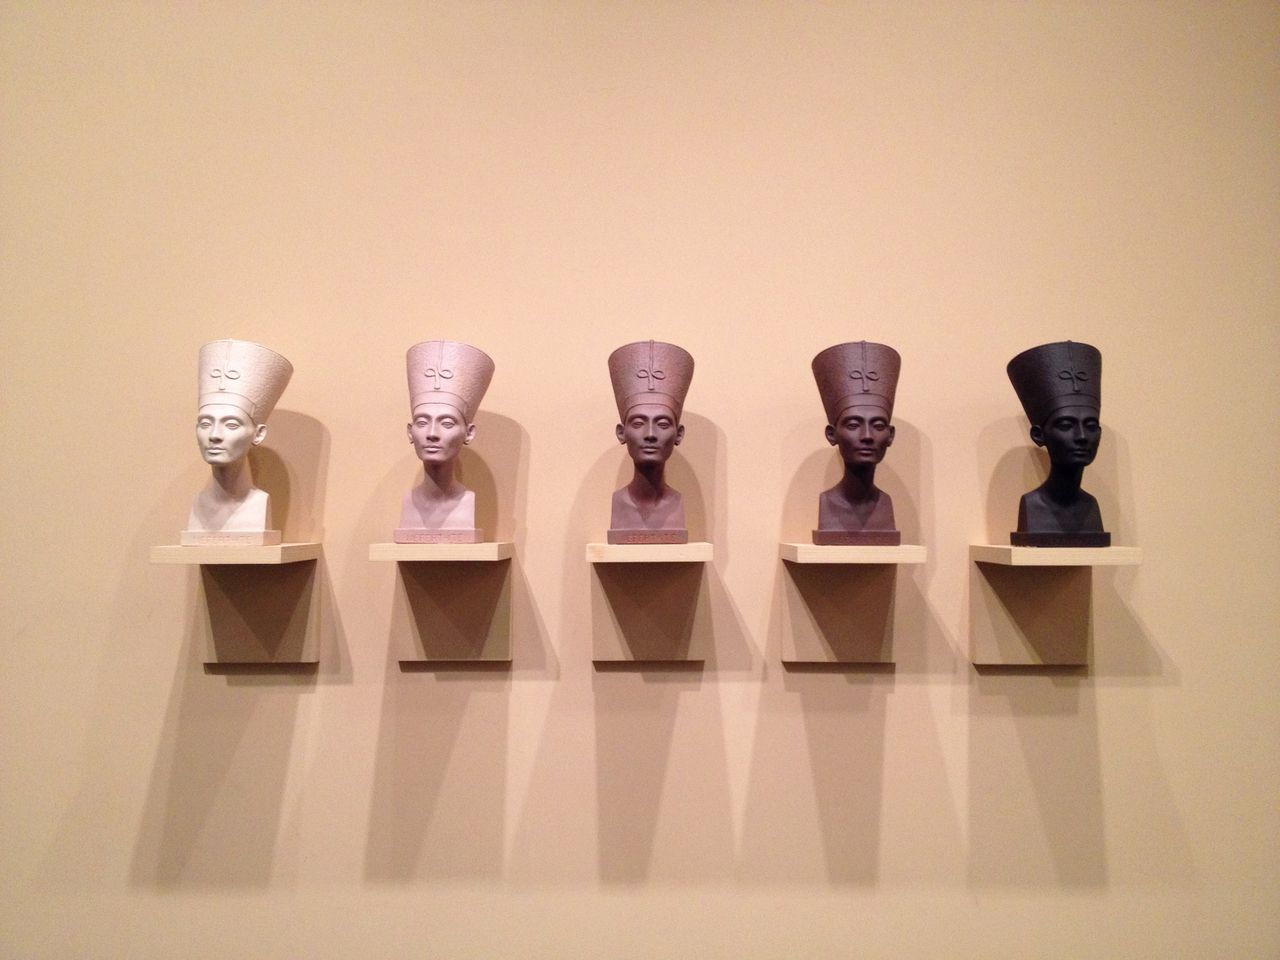 Fred wilson at the brooklyn museum things organized